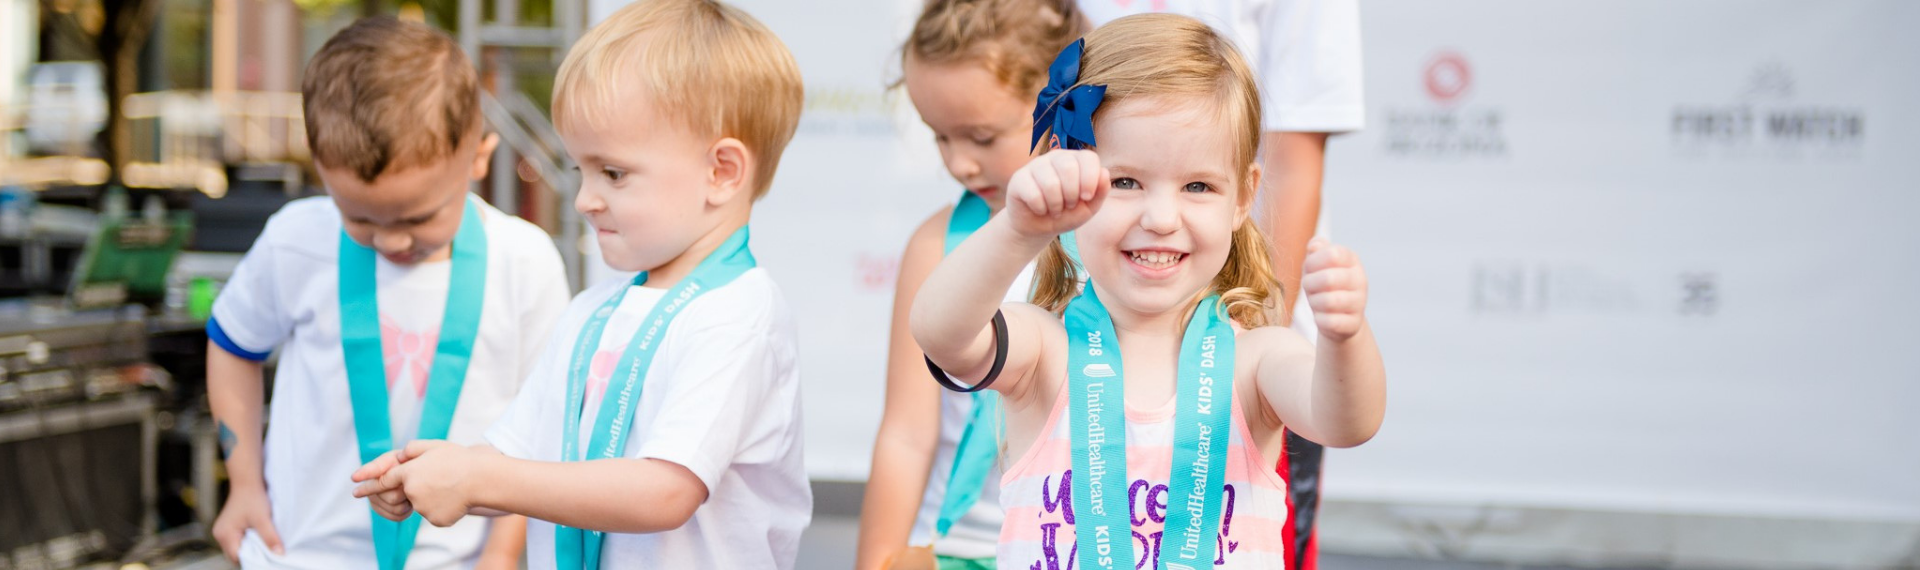 rev kids with medals to 2018 5k